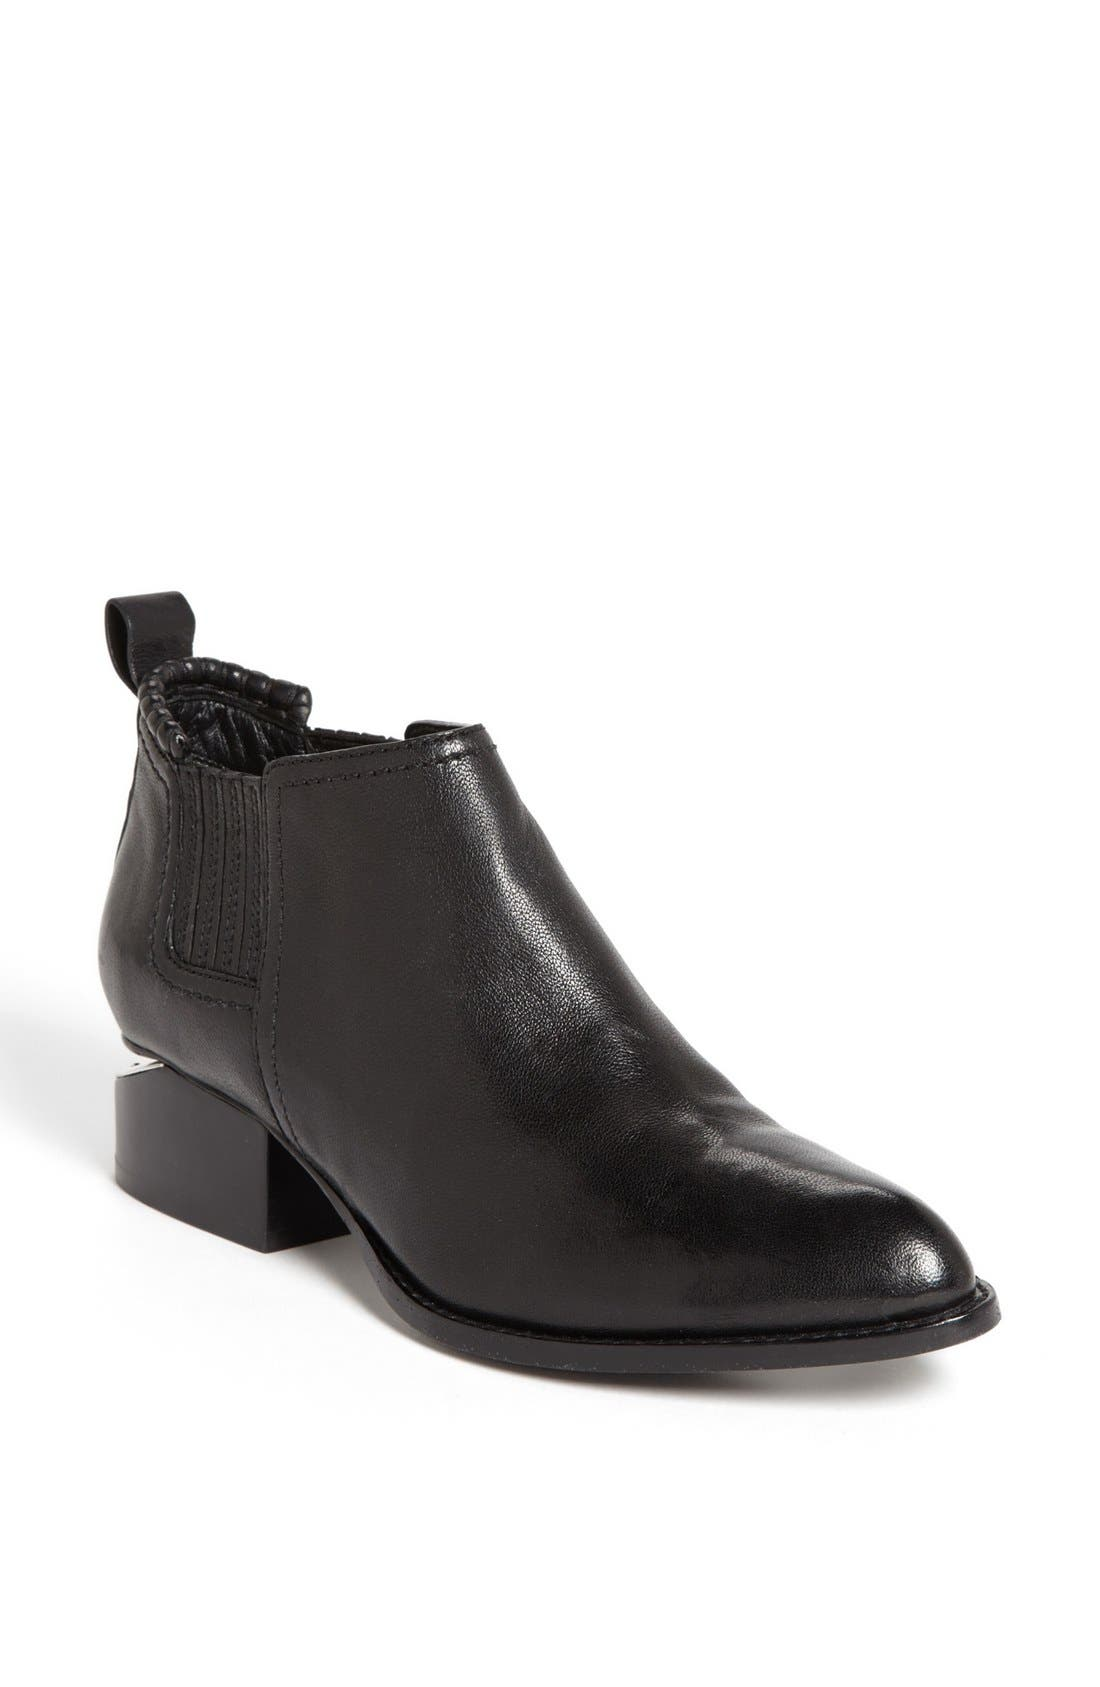 Alternate Image 1 Selected - Alexander Wang 'Kori' Ankle Boot